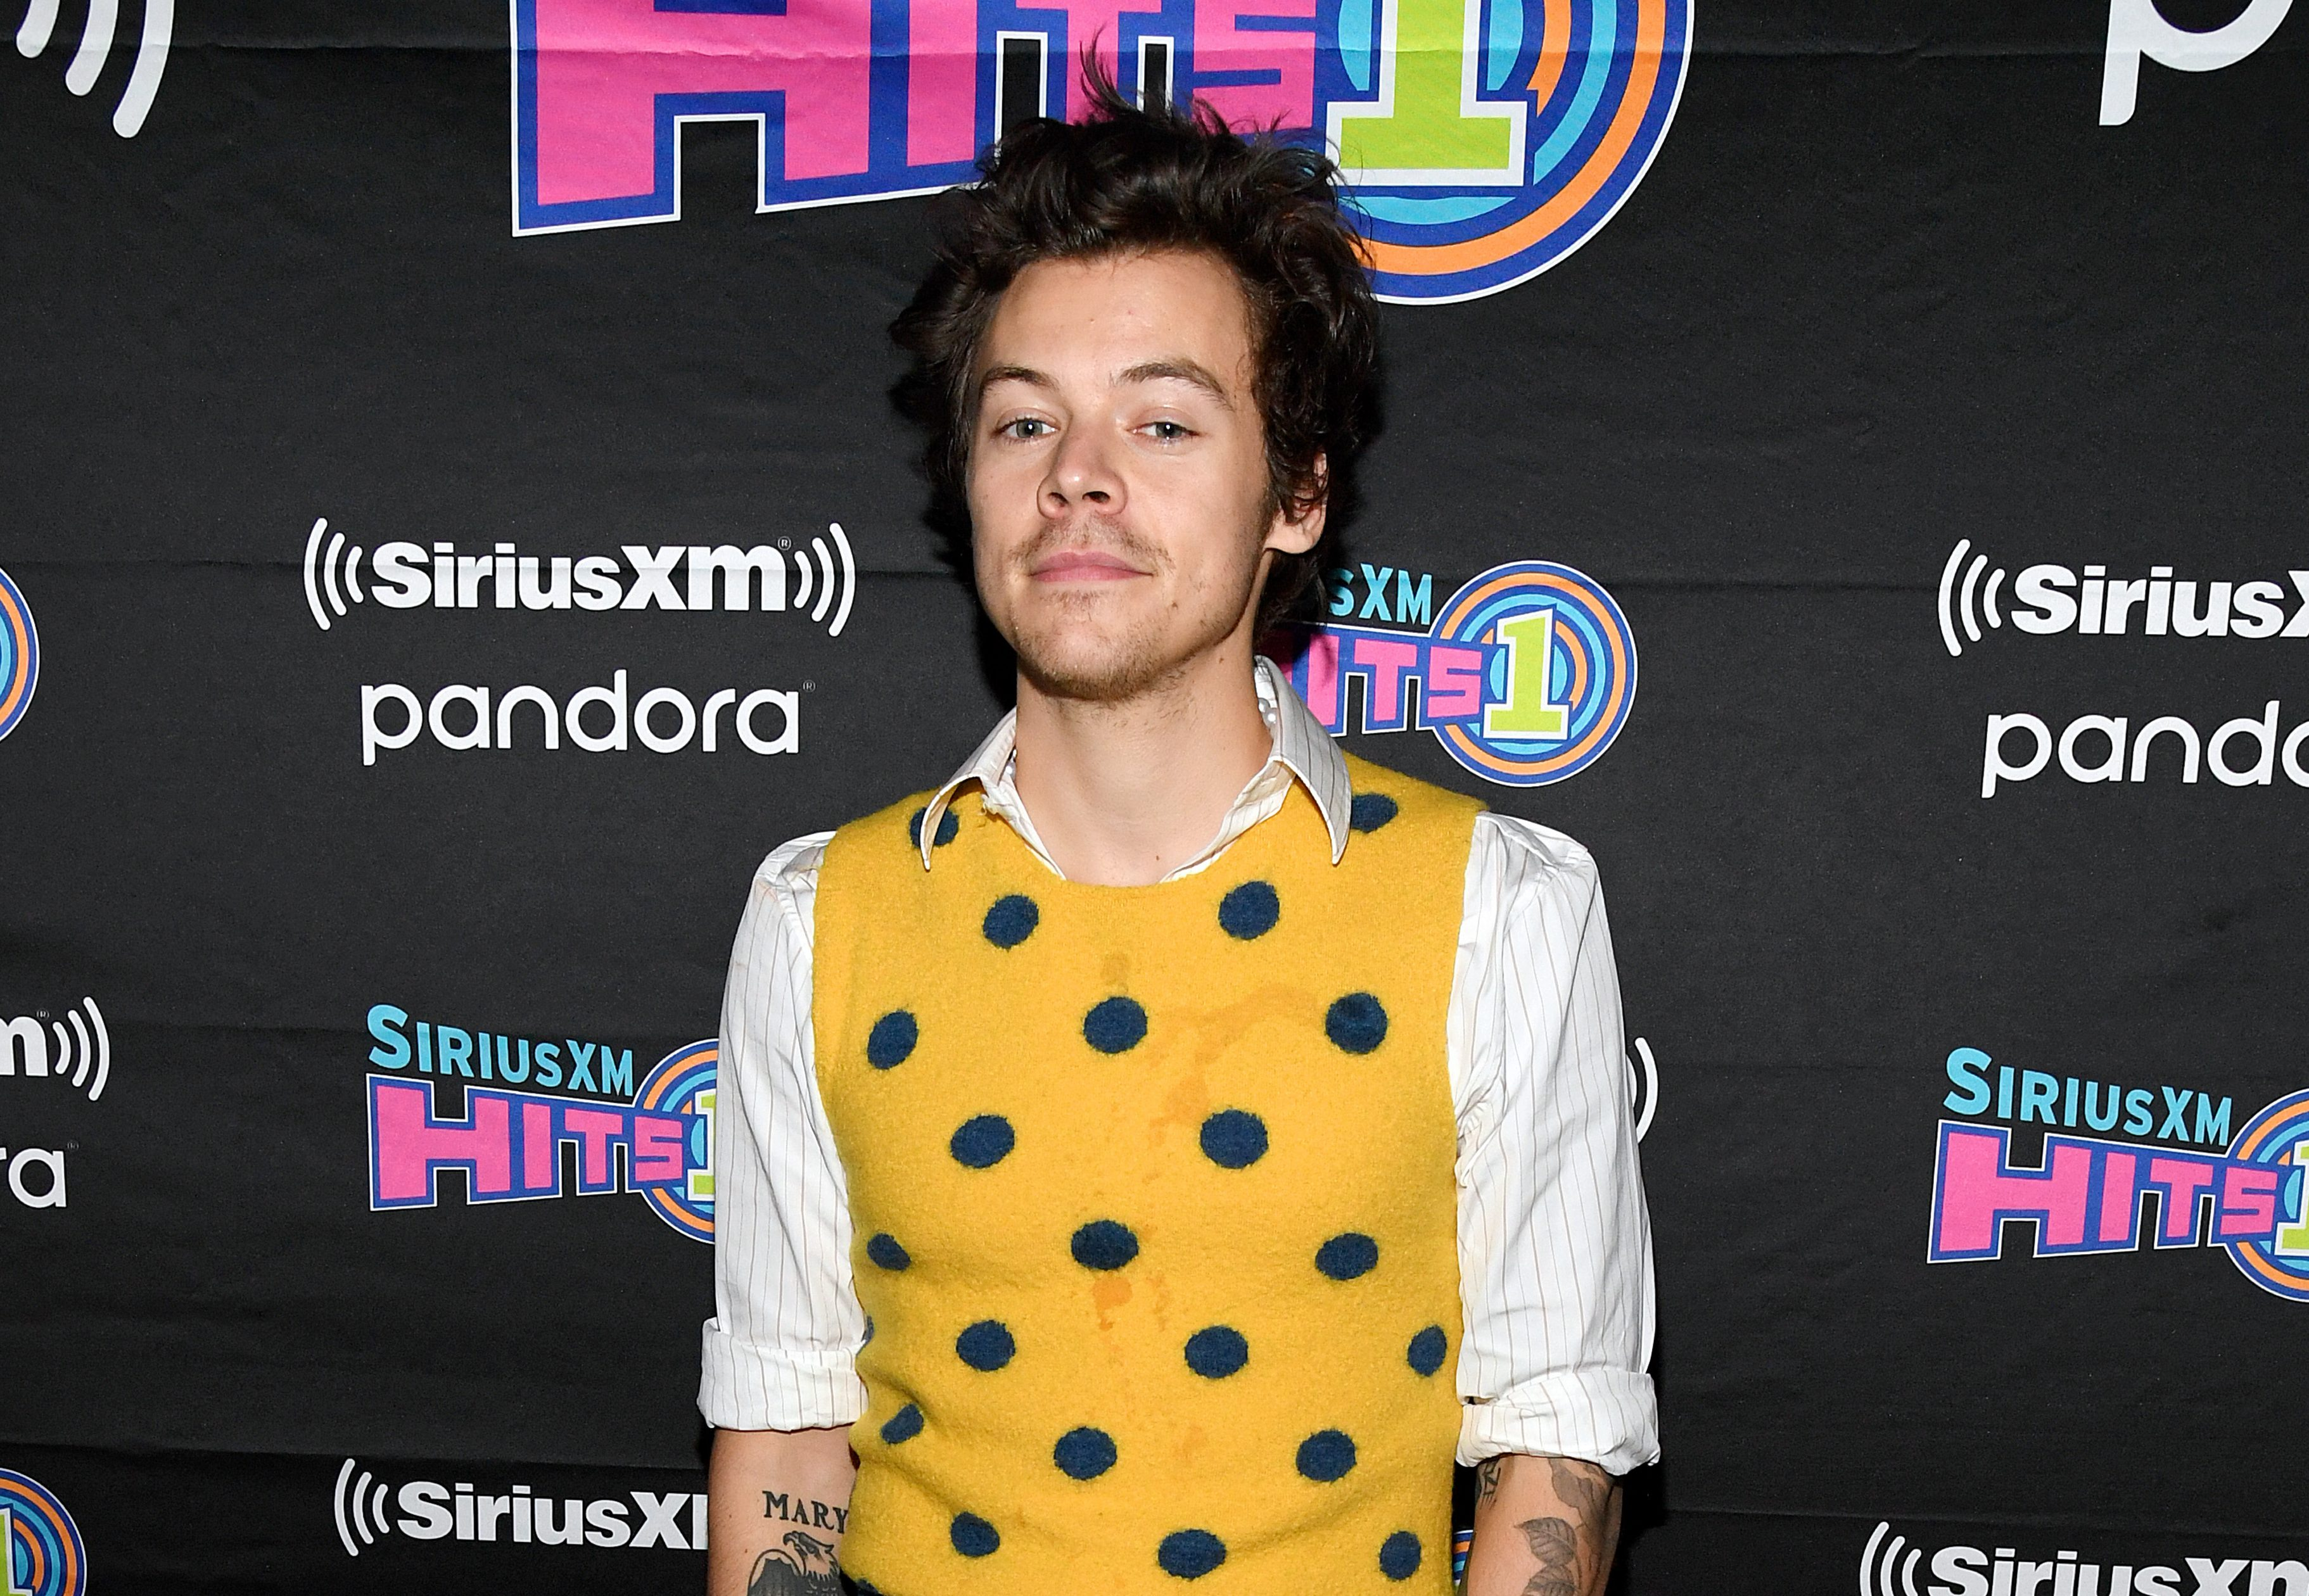 Harry Styles Debuts A New Haircut And It Has Twitter Going Crazy